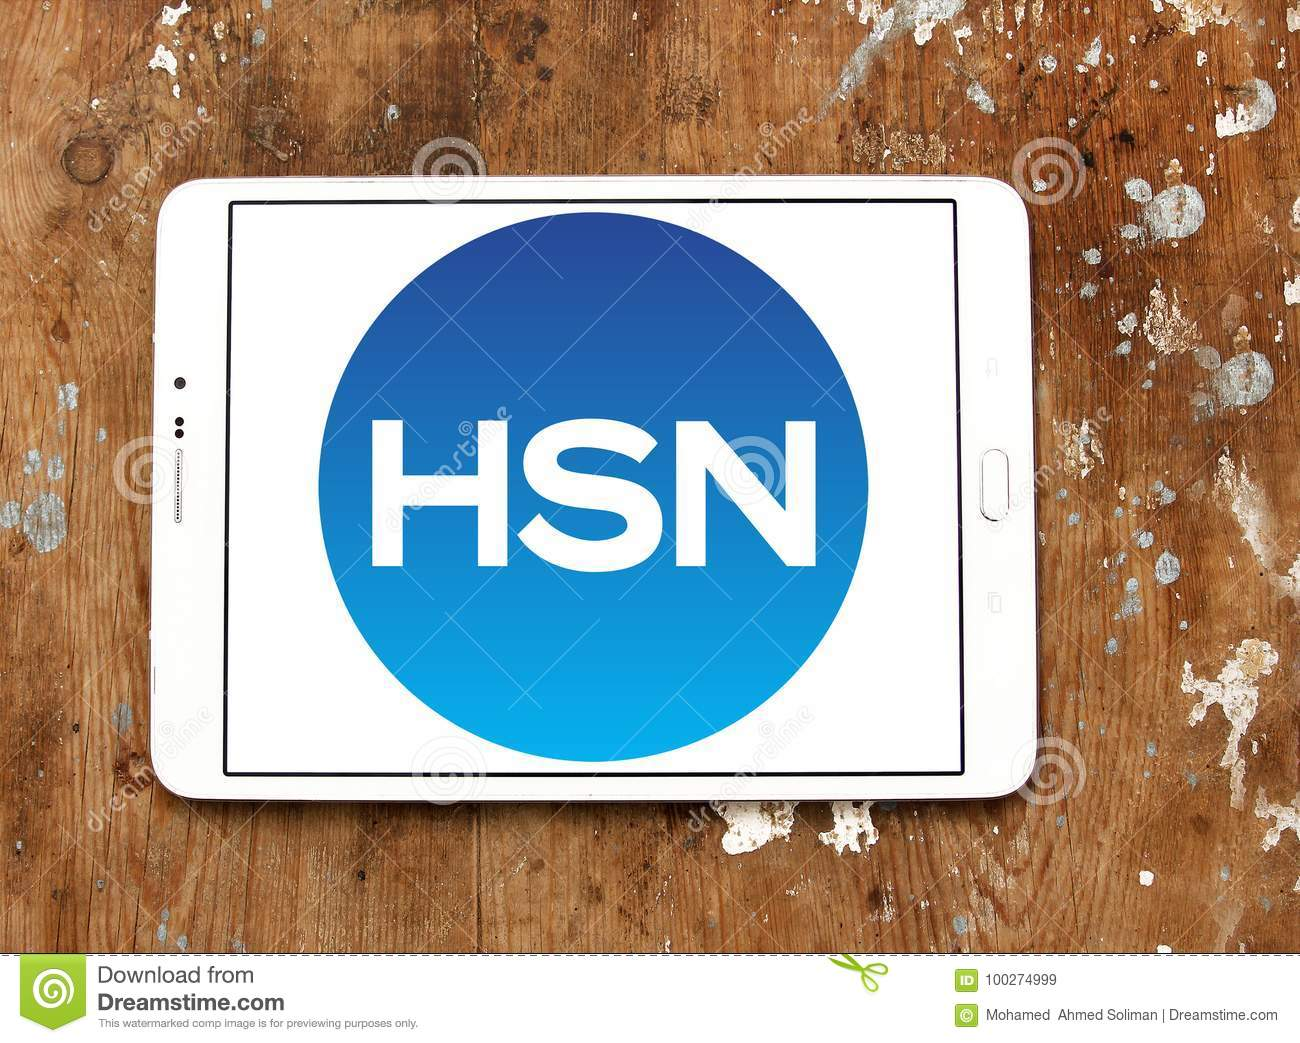 Hsn Home Shopping Network Logo Editorial Stock Image Image Of Motto Brands 100274999